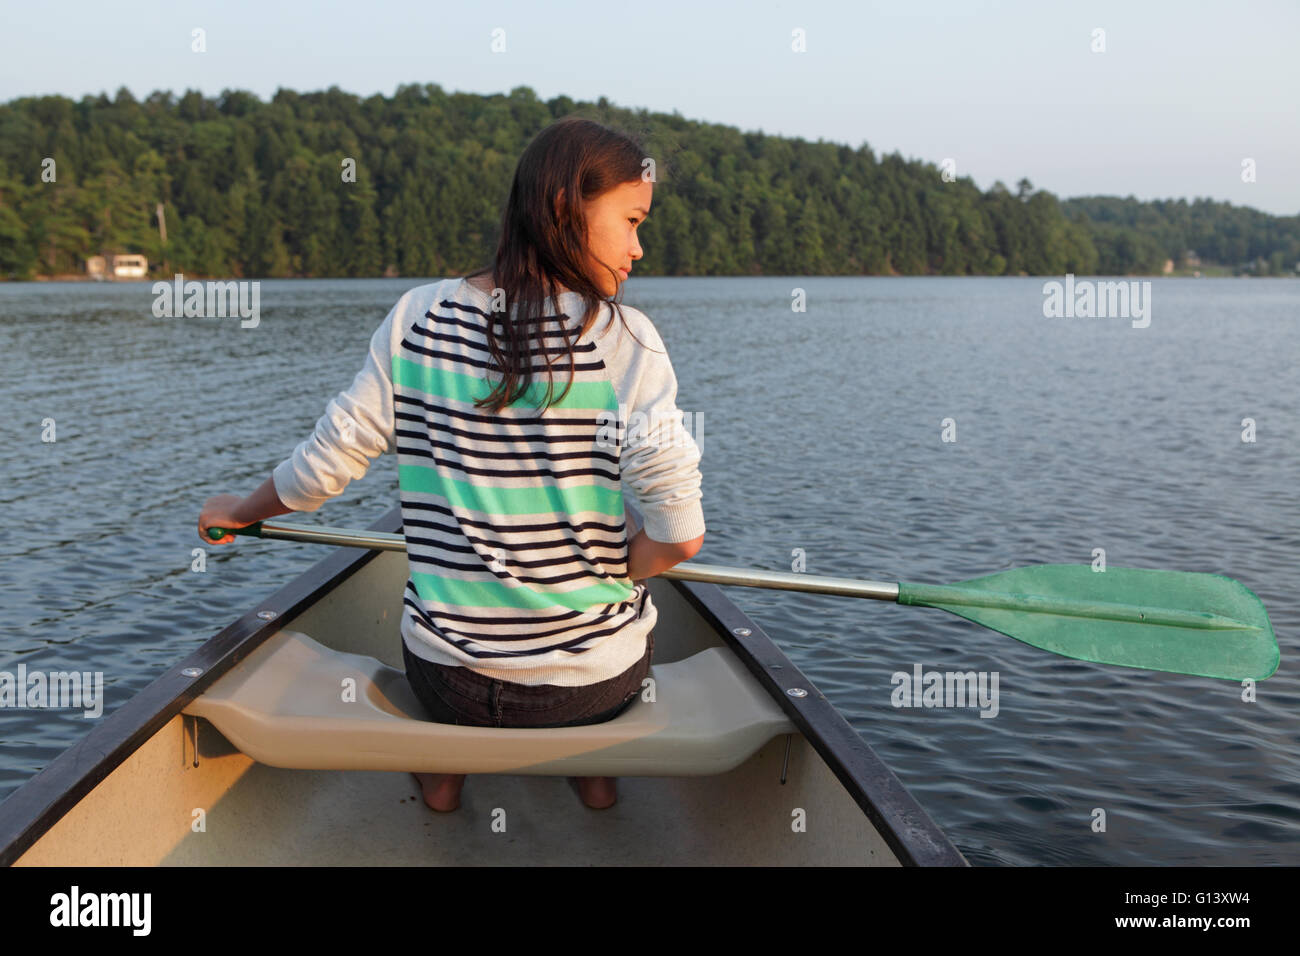 Young girl paddling a canoe on a calm lake in Western Vermont in the summer - Stock Image